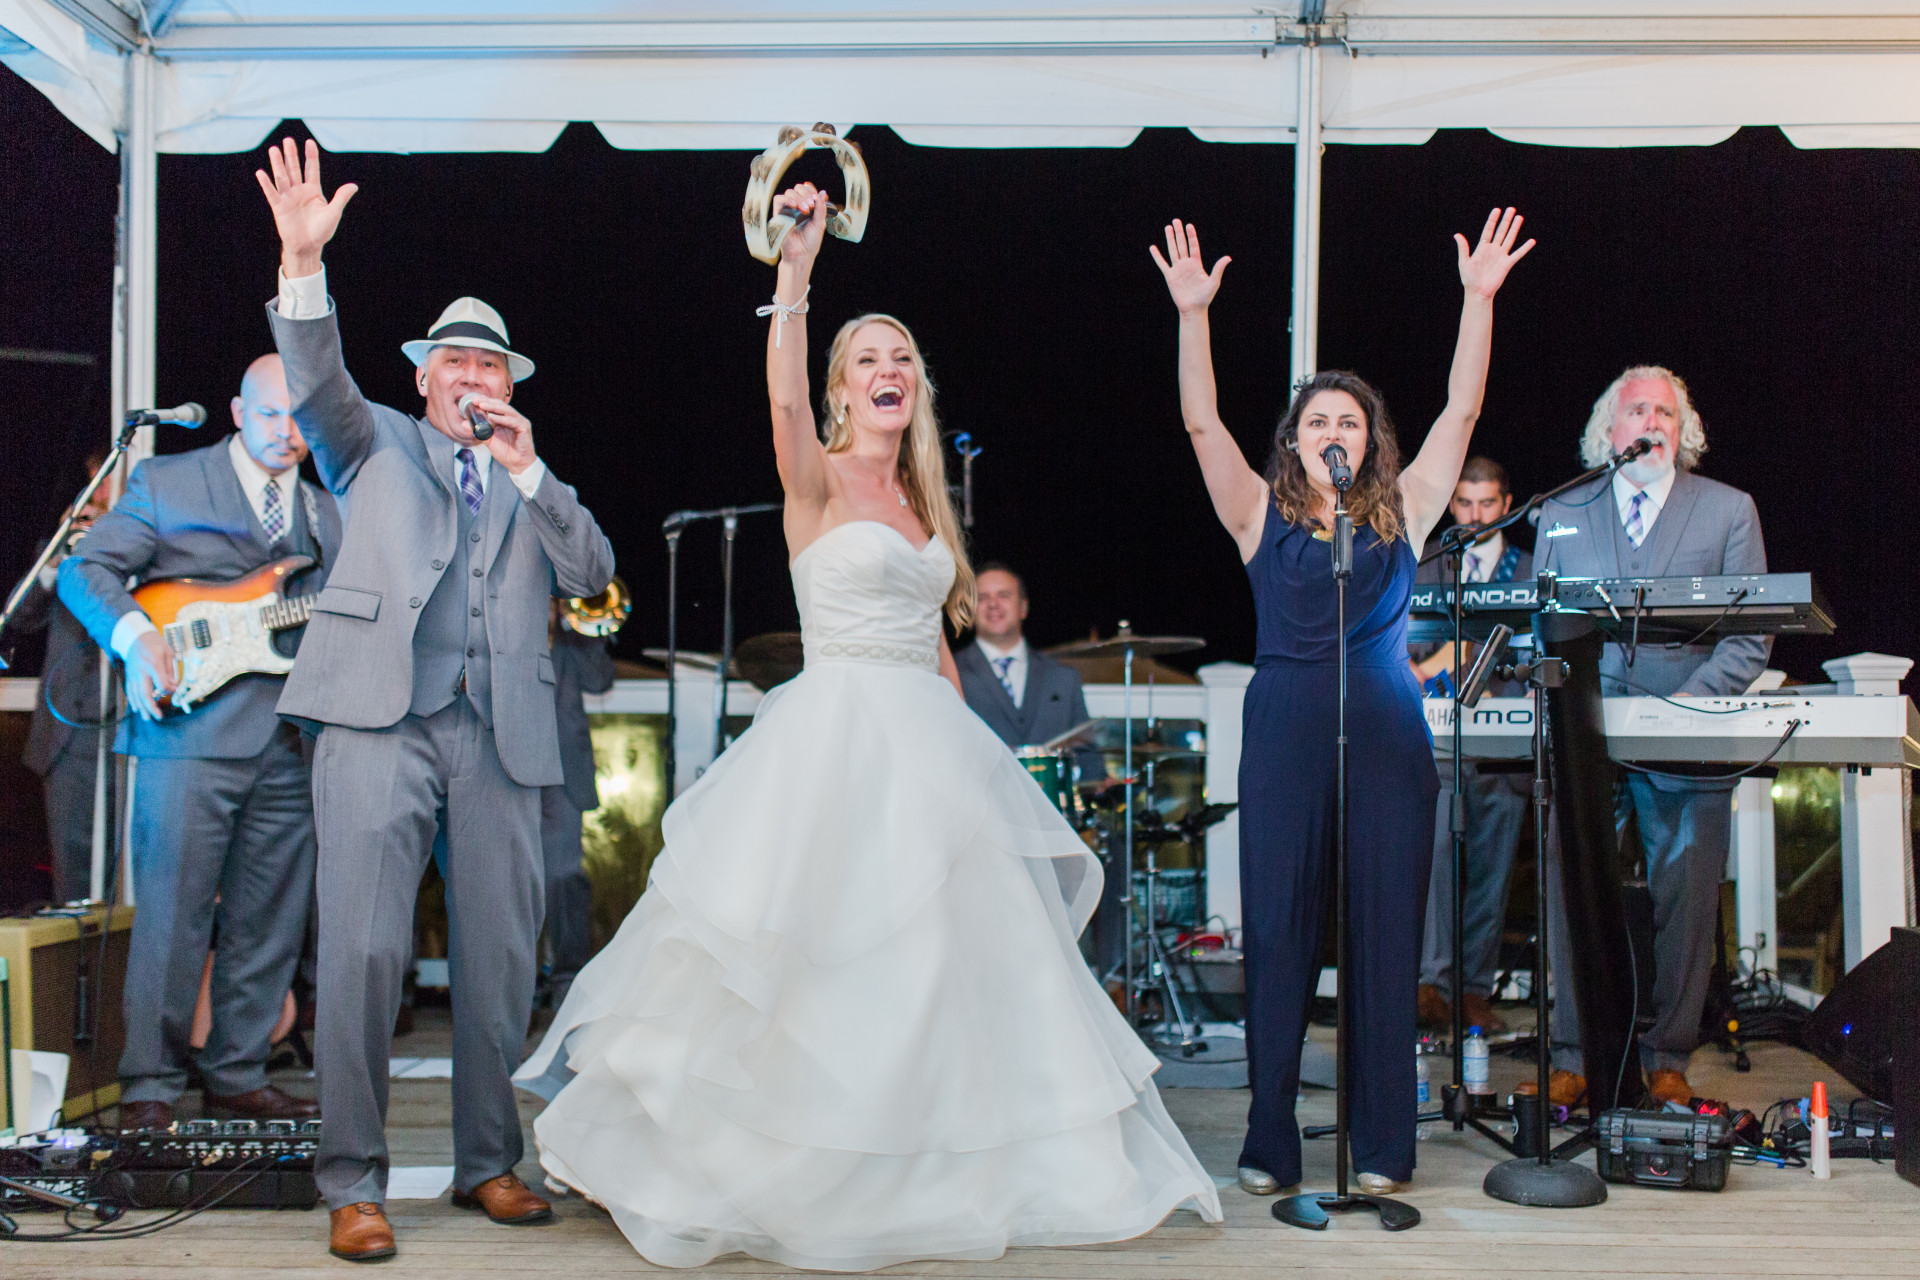 jt-cbi-wedding-cape-cod-groove-alliance-shoreshotz-0001-1